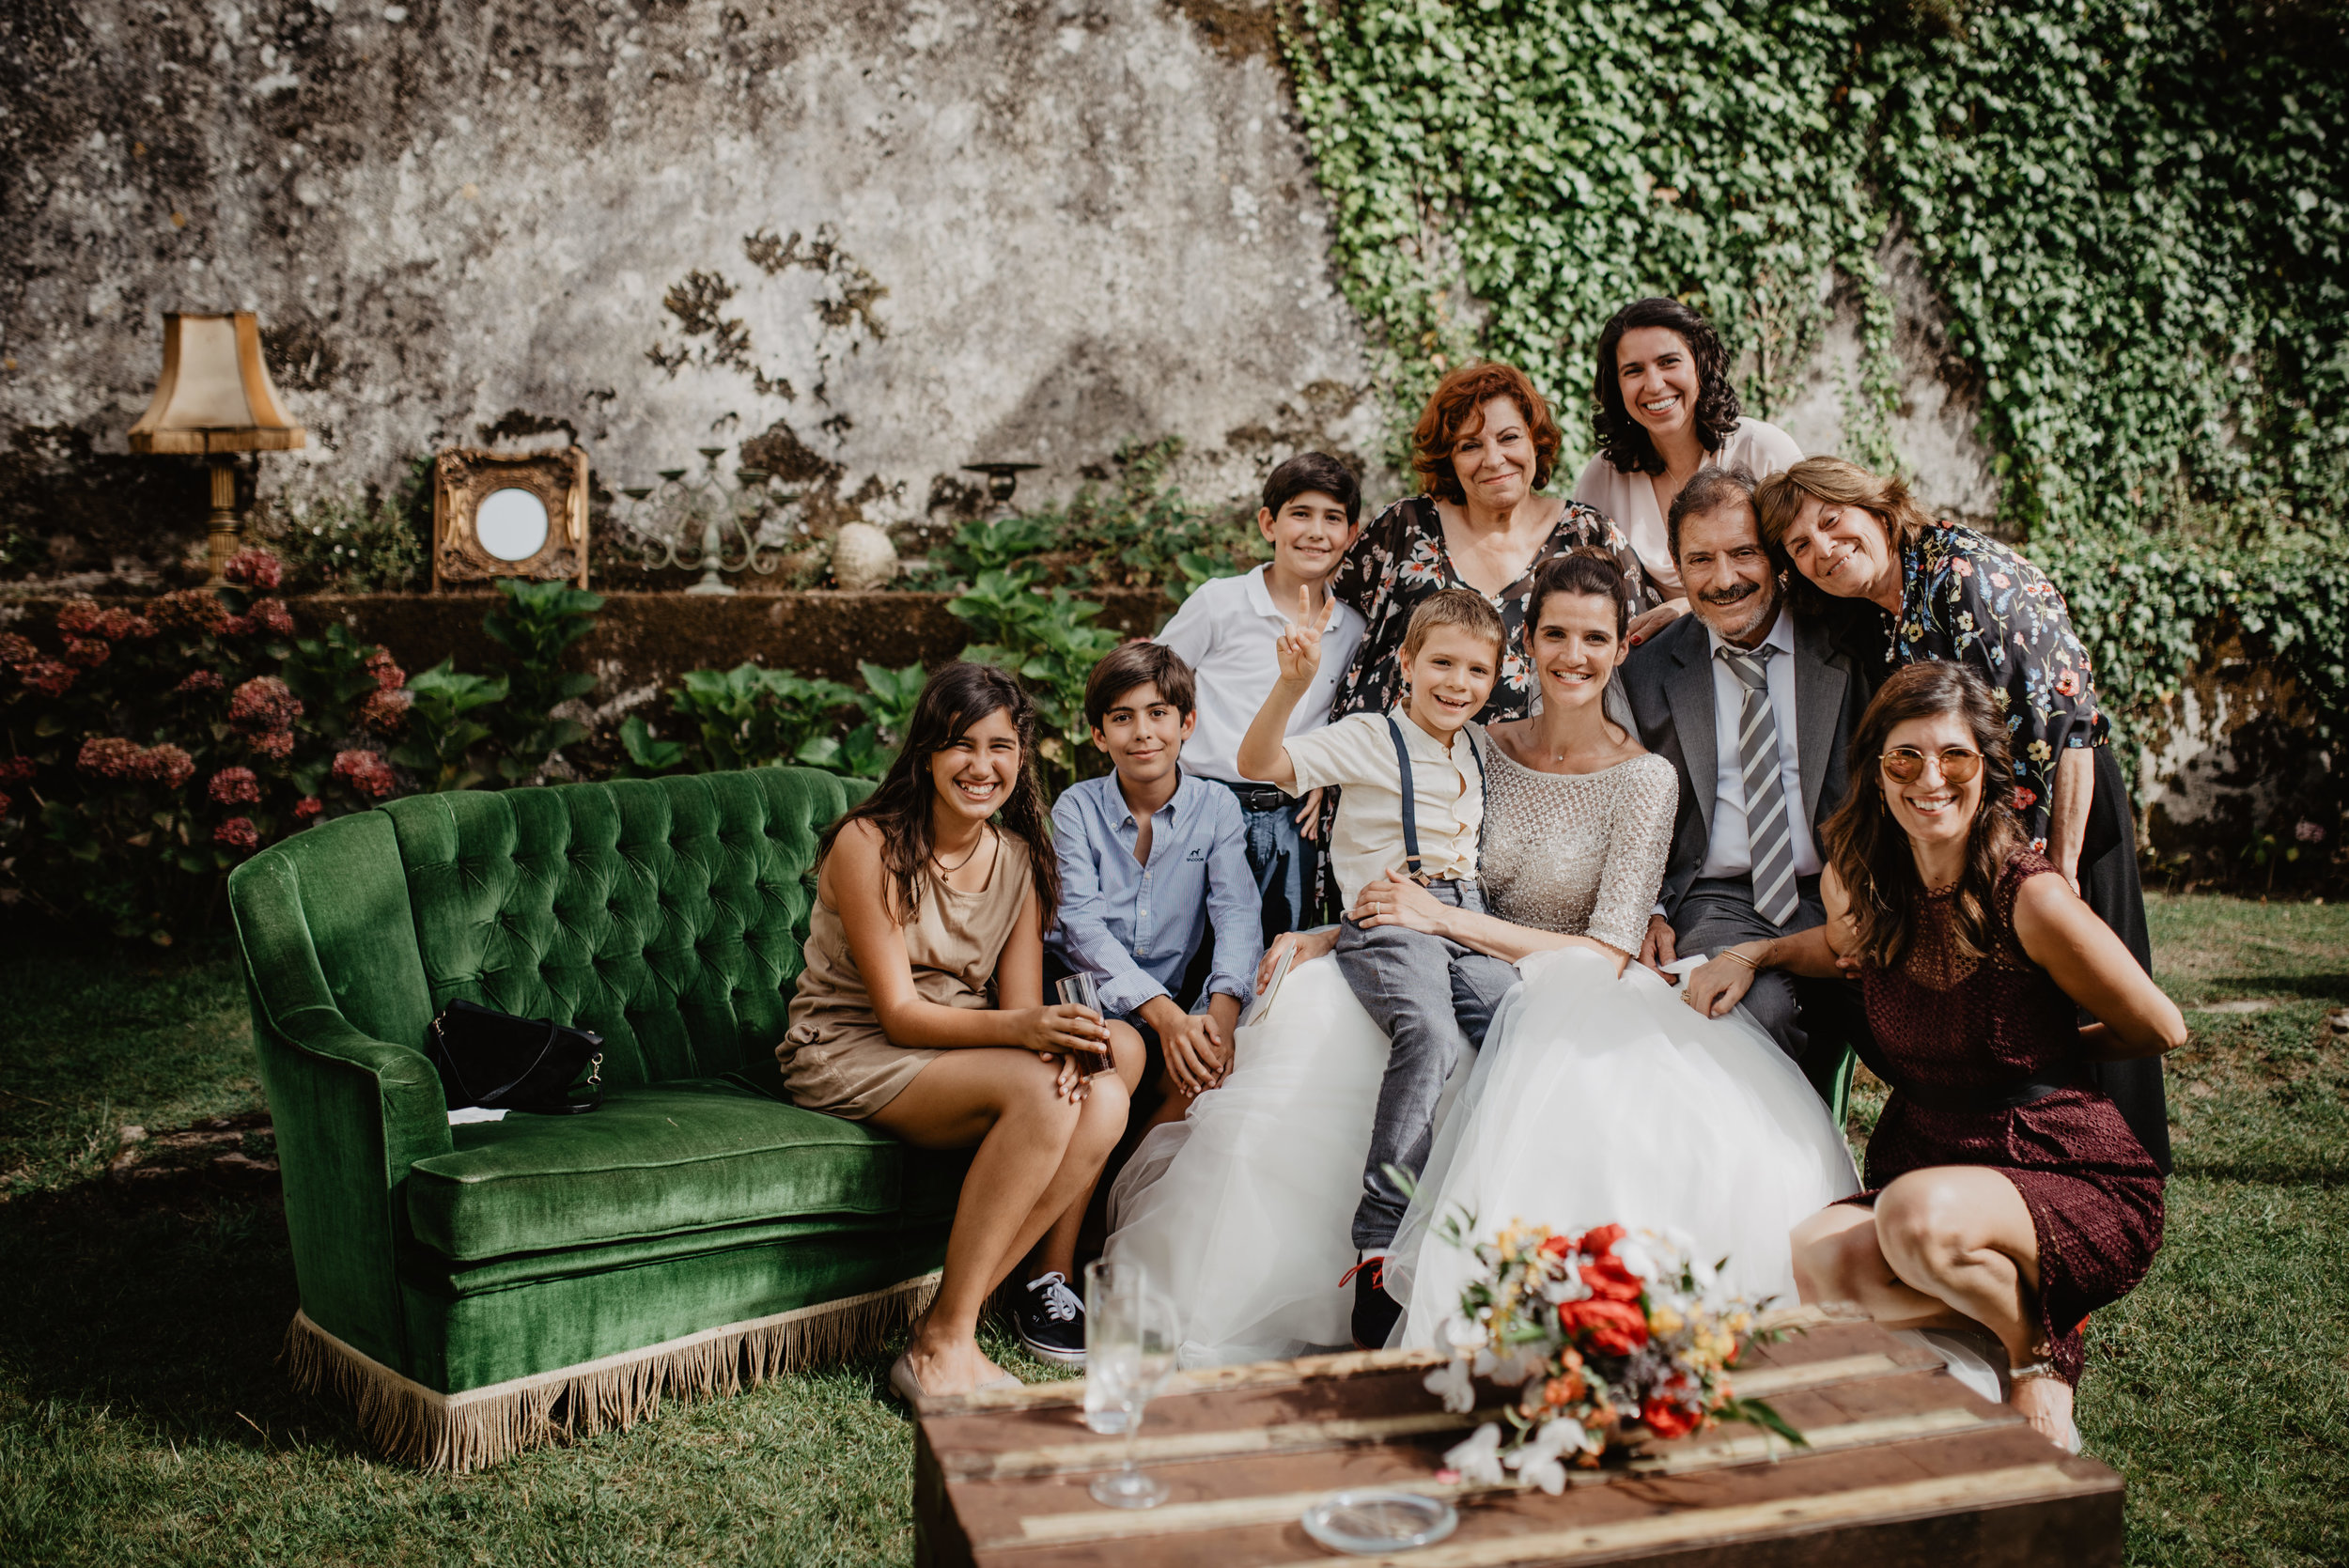 Lapela-photography-wedding-sintra-portugal-78.jpg